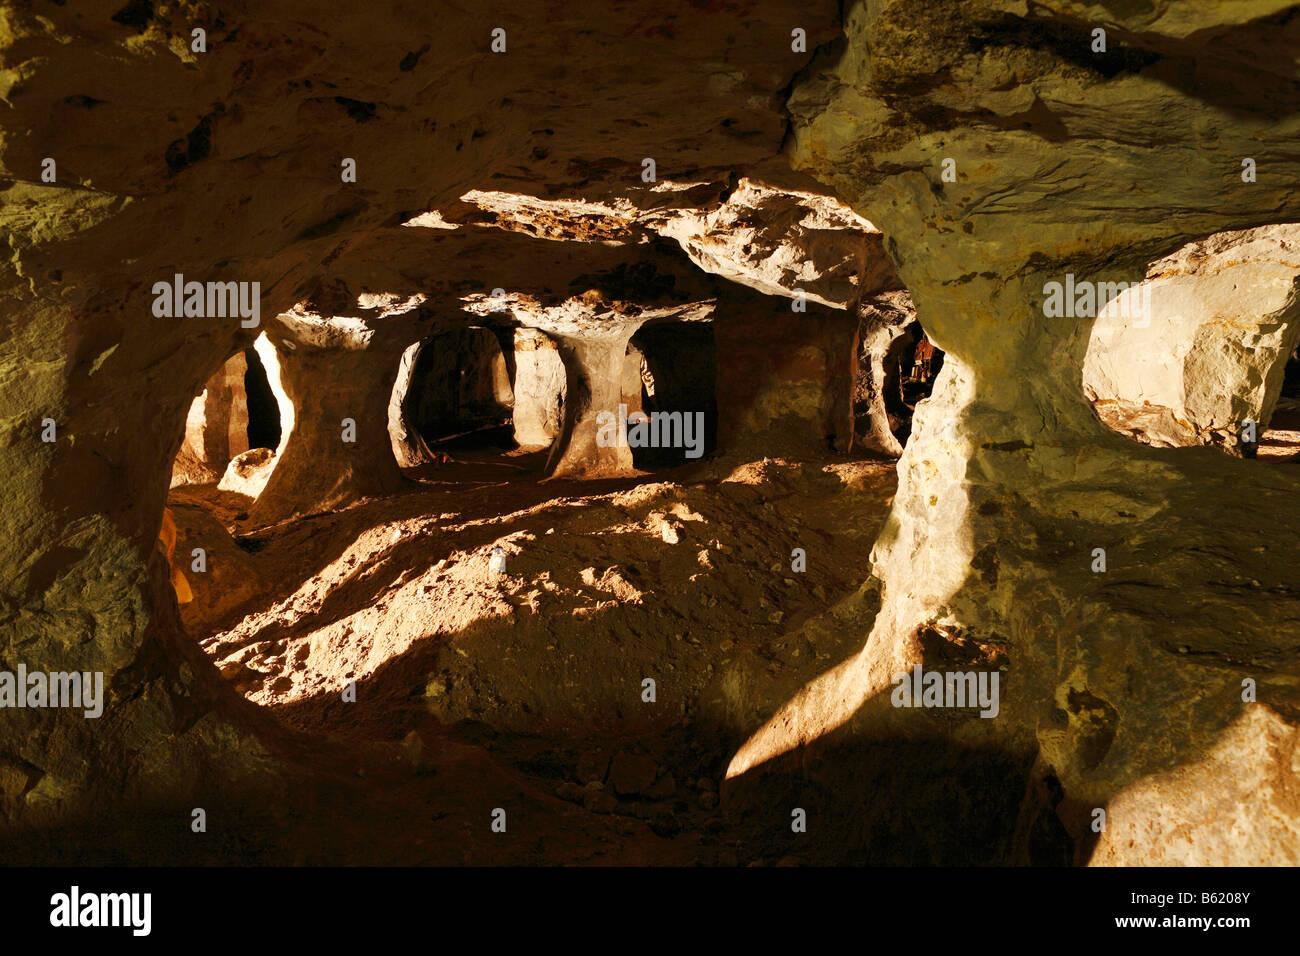 Walldorf sandstone and fairytale cave, Rhoen, Thuringia, Gerrmany, Europe - Stock Image